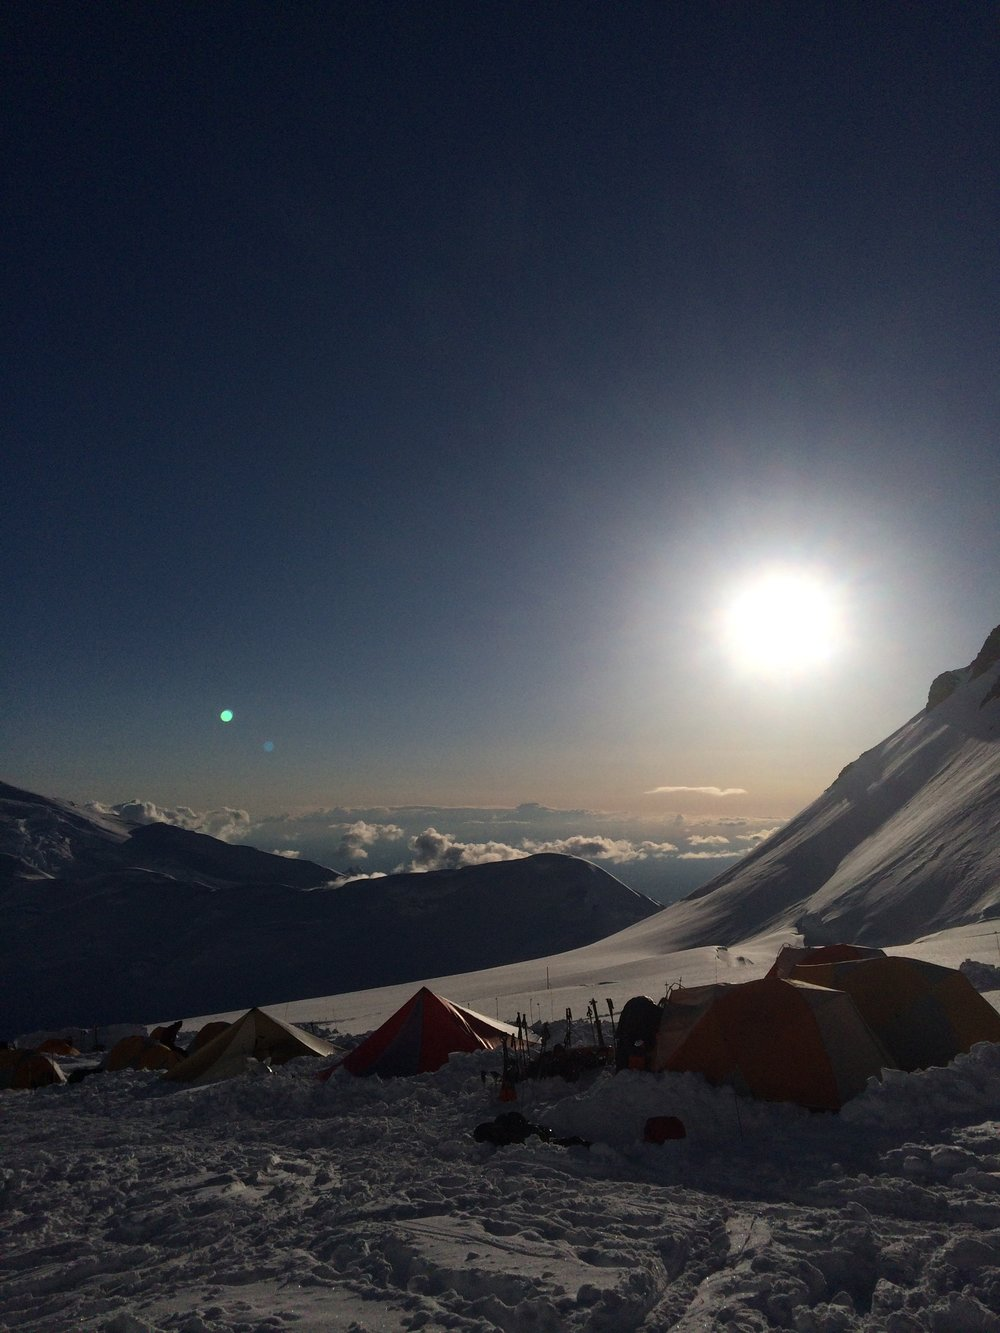 Denali - 14' Camp